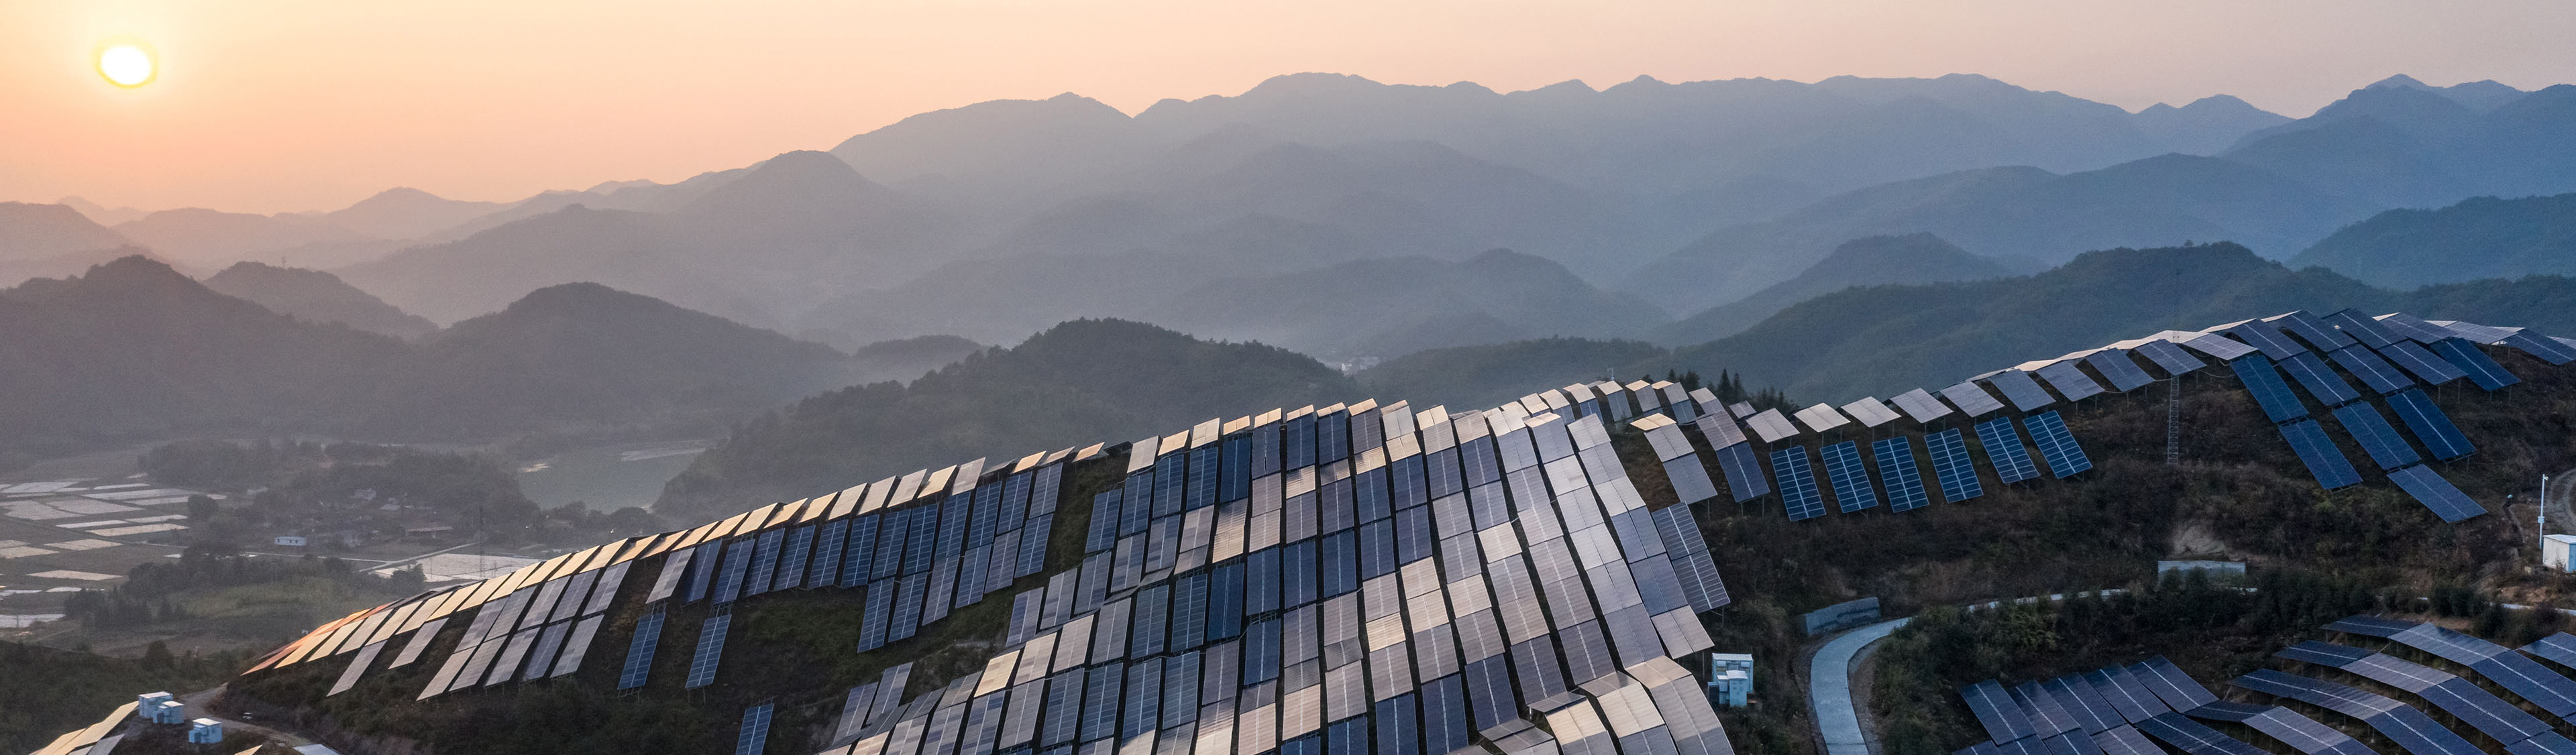 EY - Solar power plant on the top of the mountain at sunset